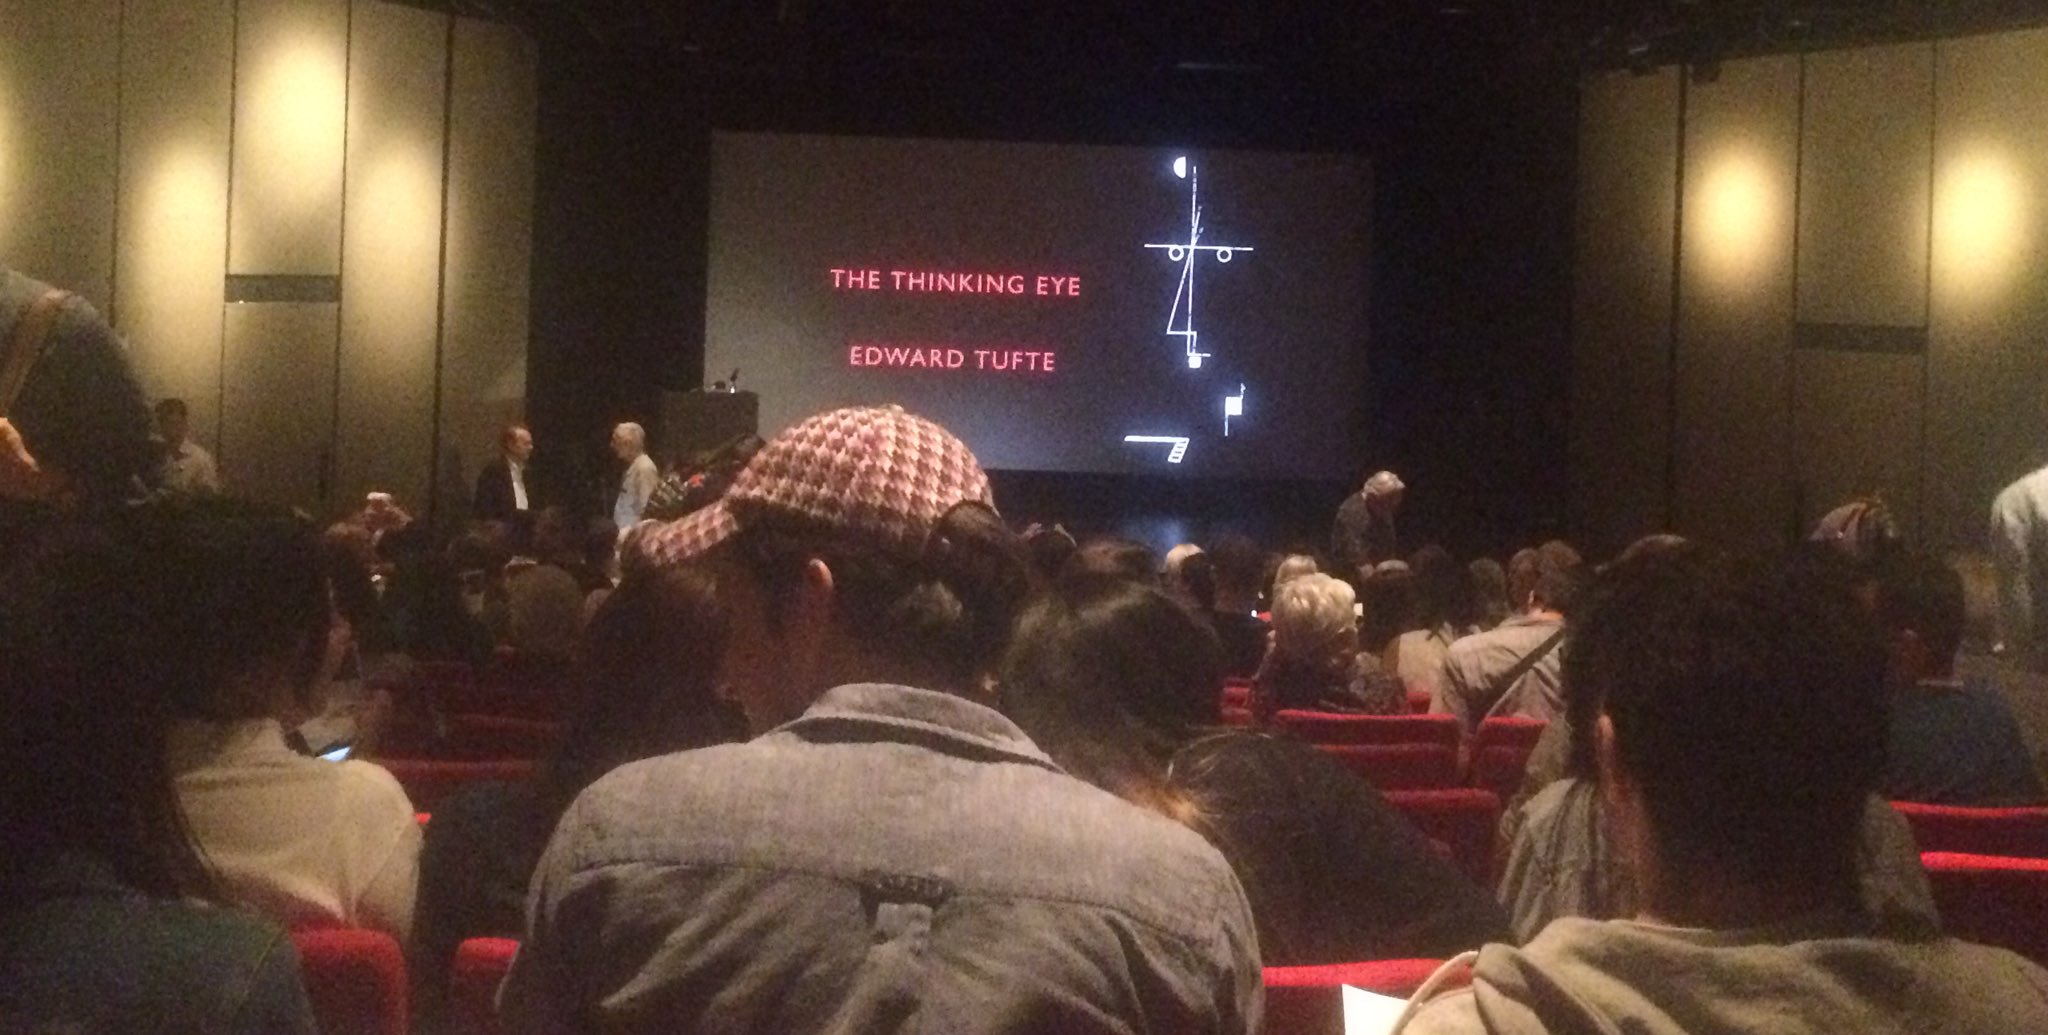 Couldn't miss the @EdwardTufte lecture at @artcenteredu @InnovatPasadena for the world! https://t.co/T47E8qypAN